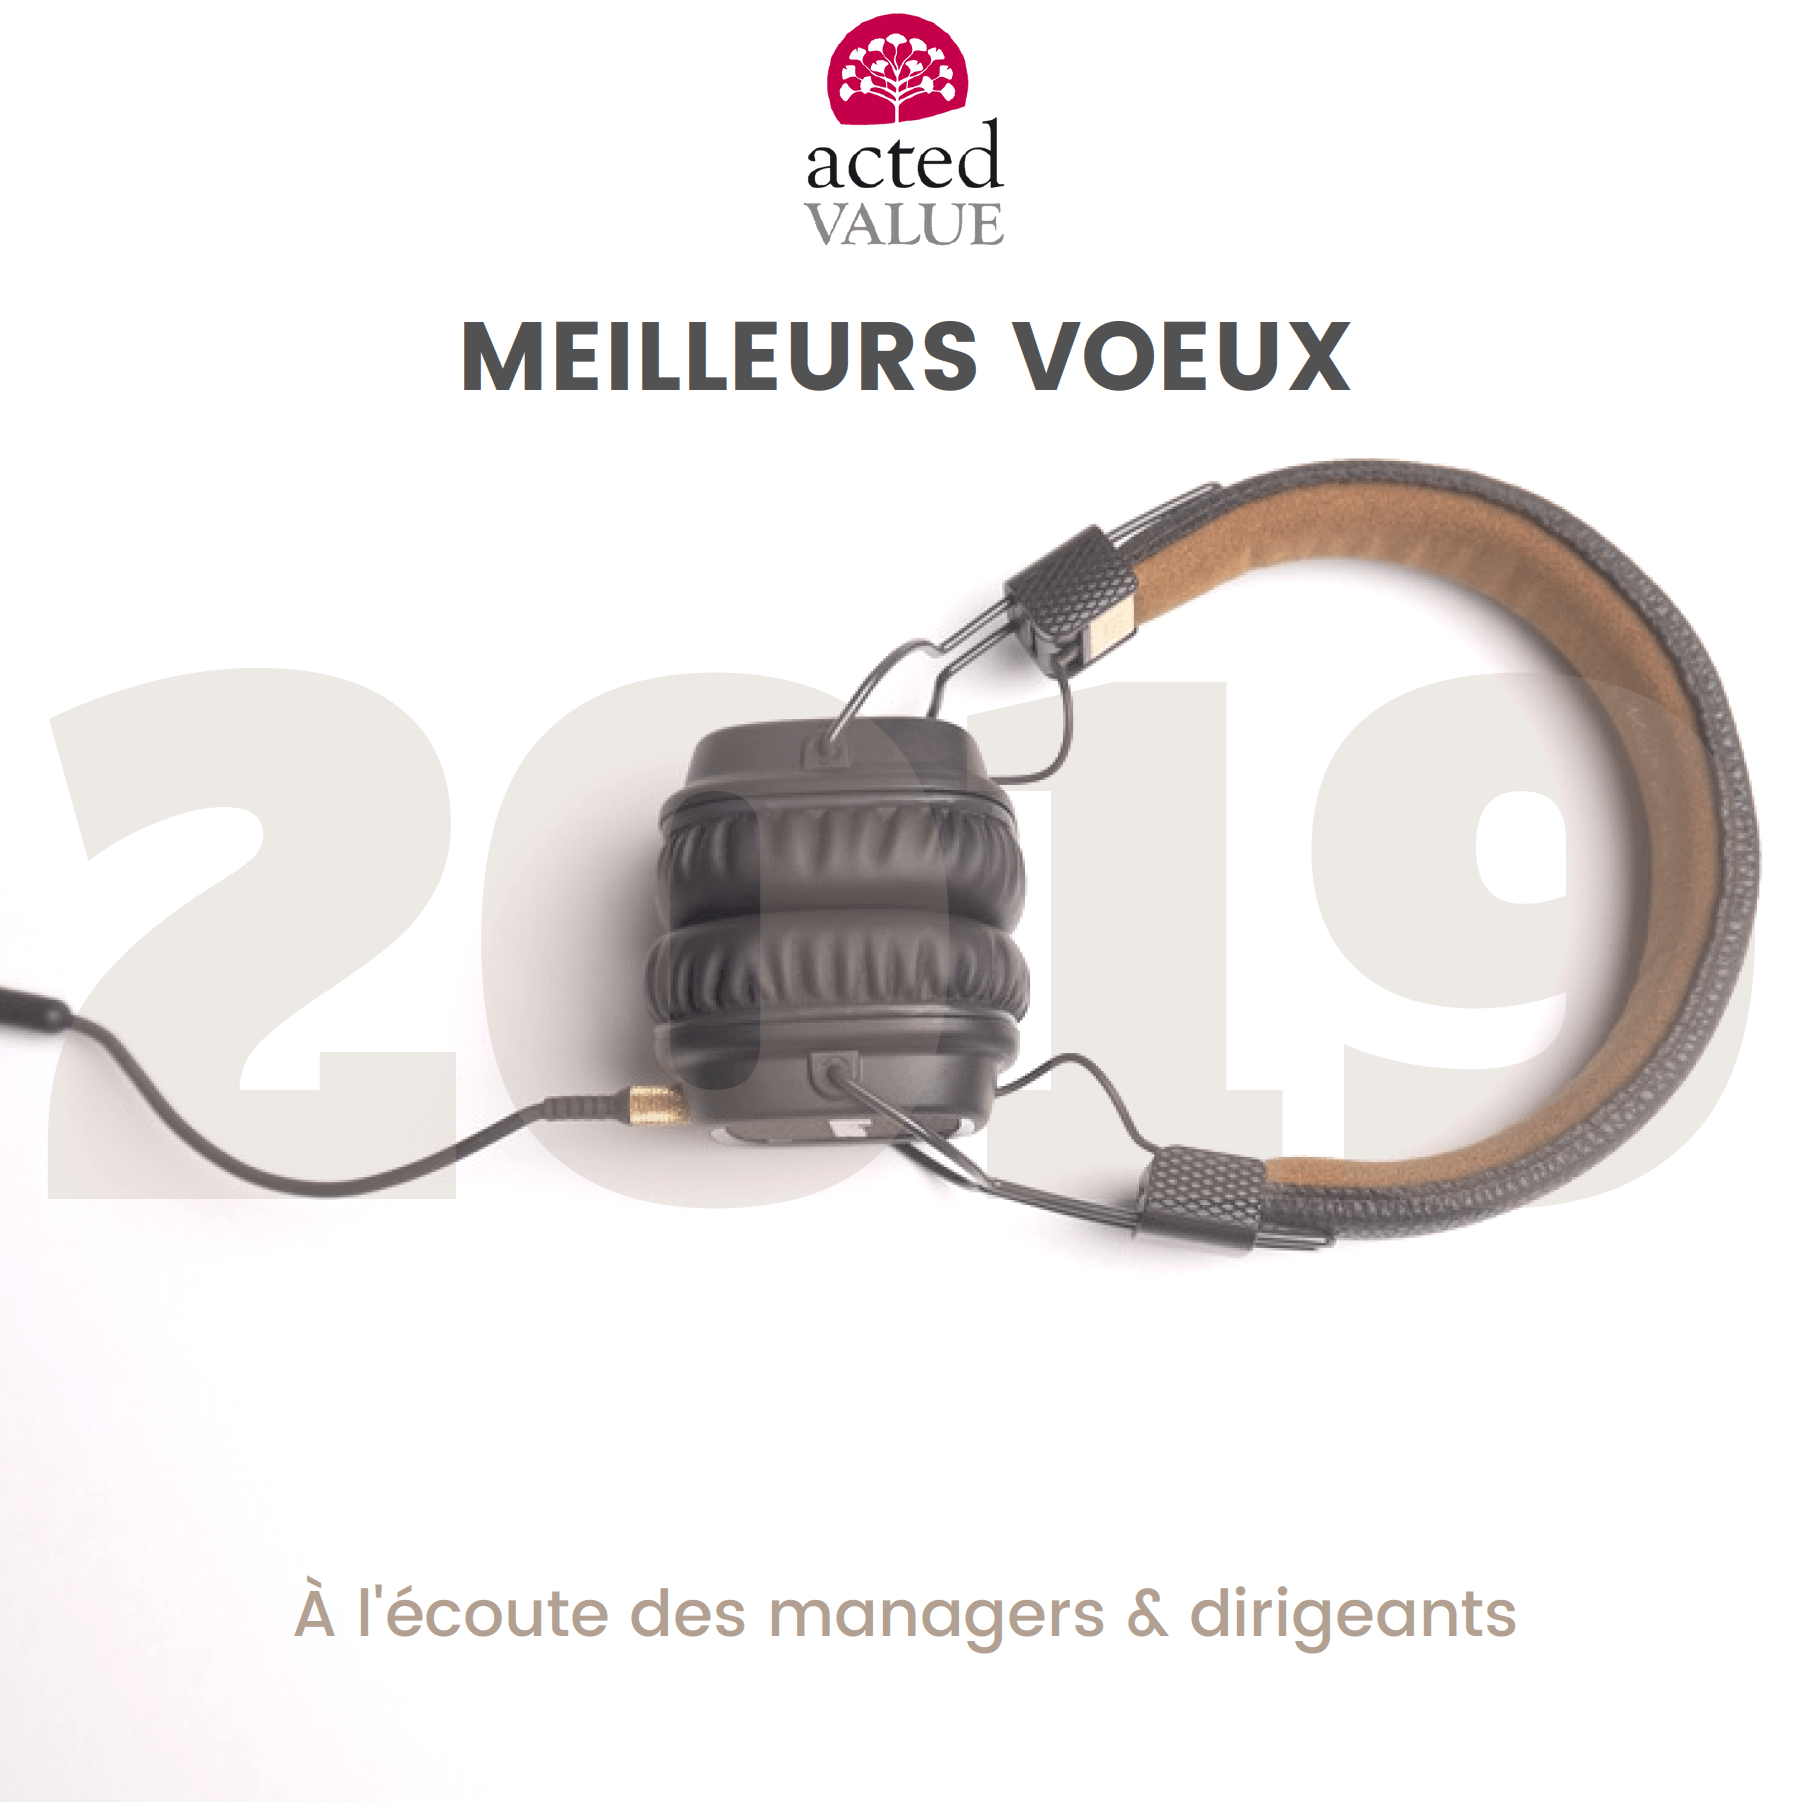 Voeux Acted Value 2019